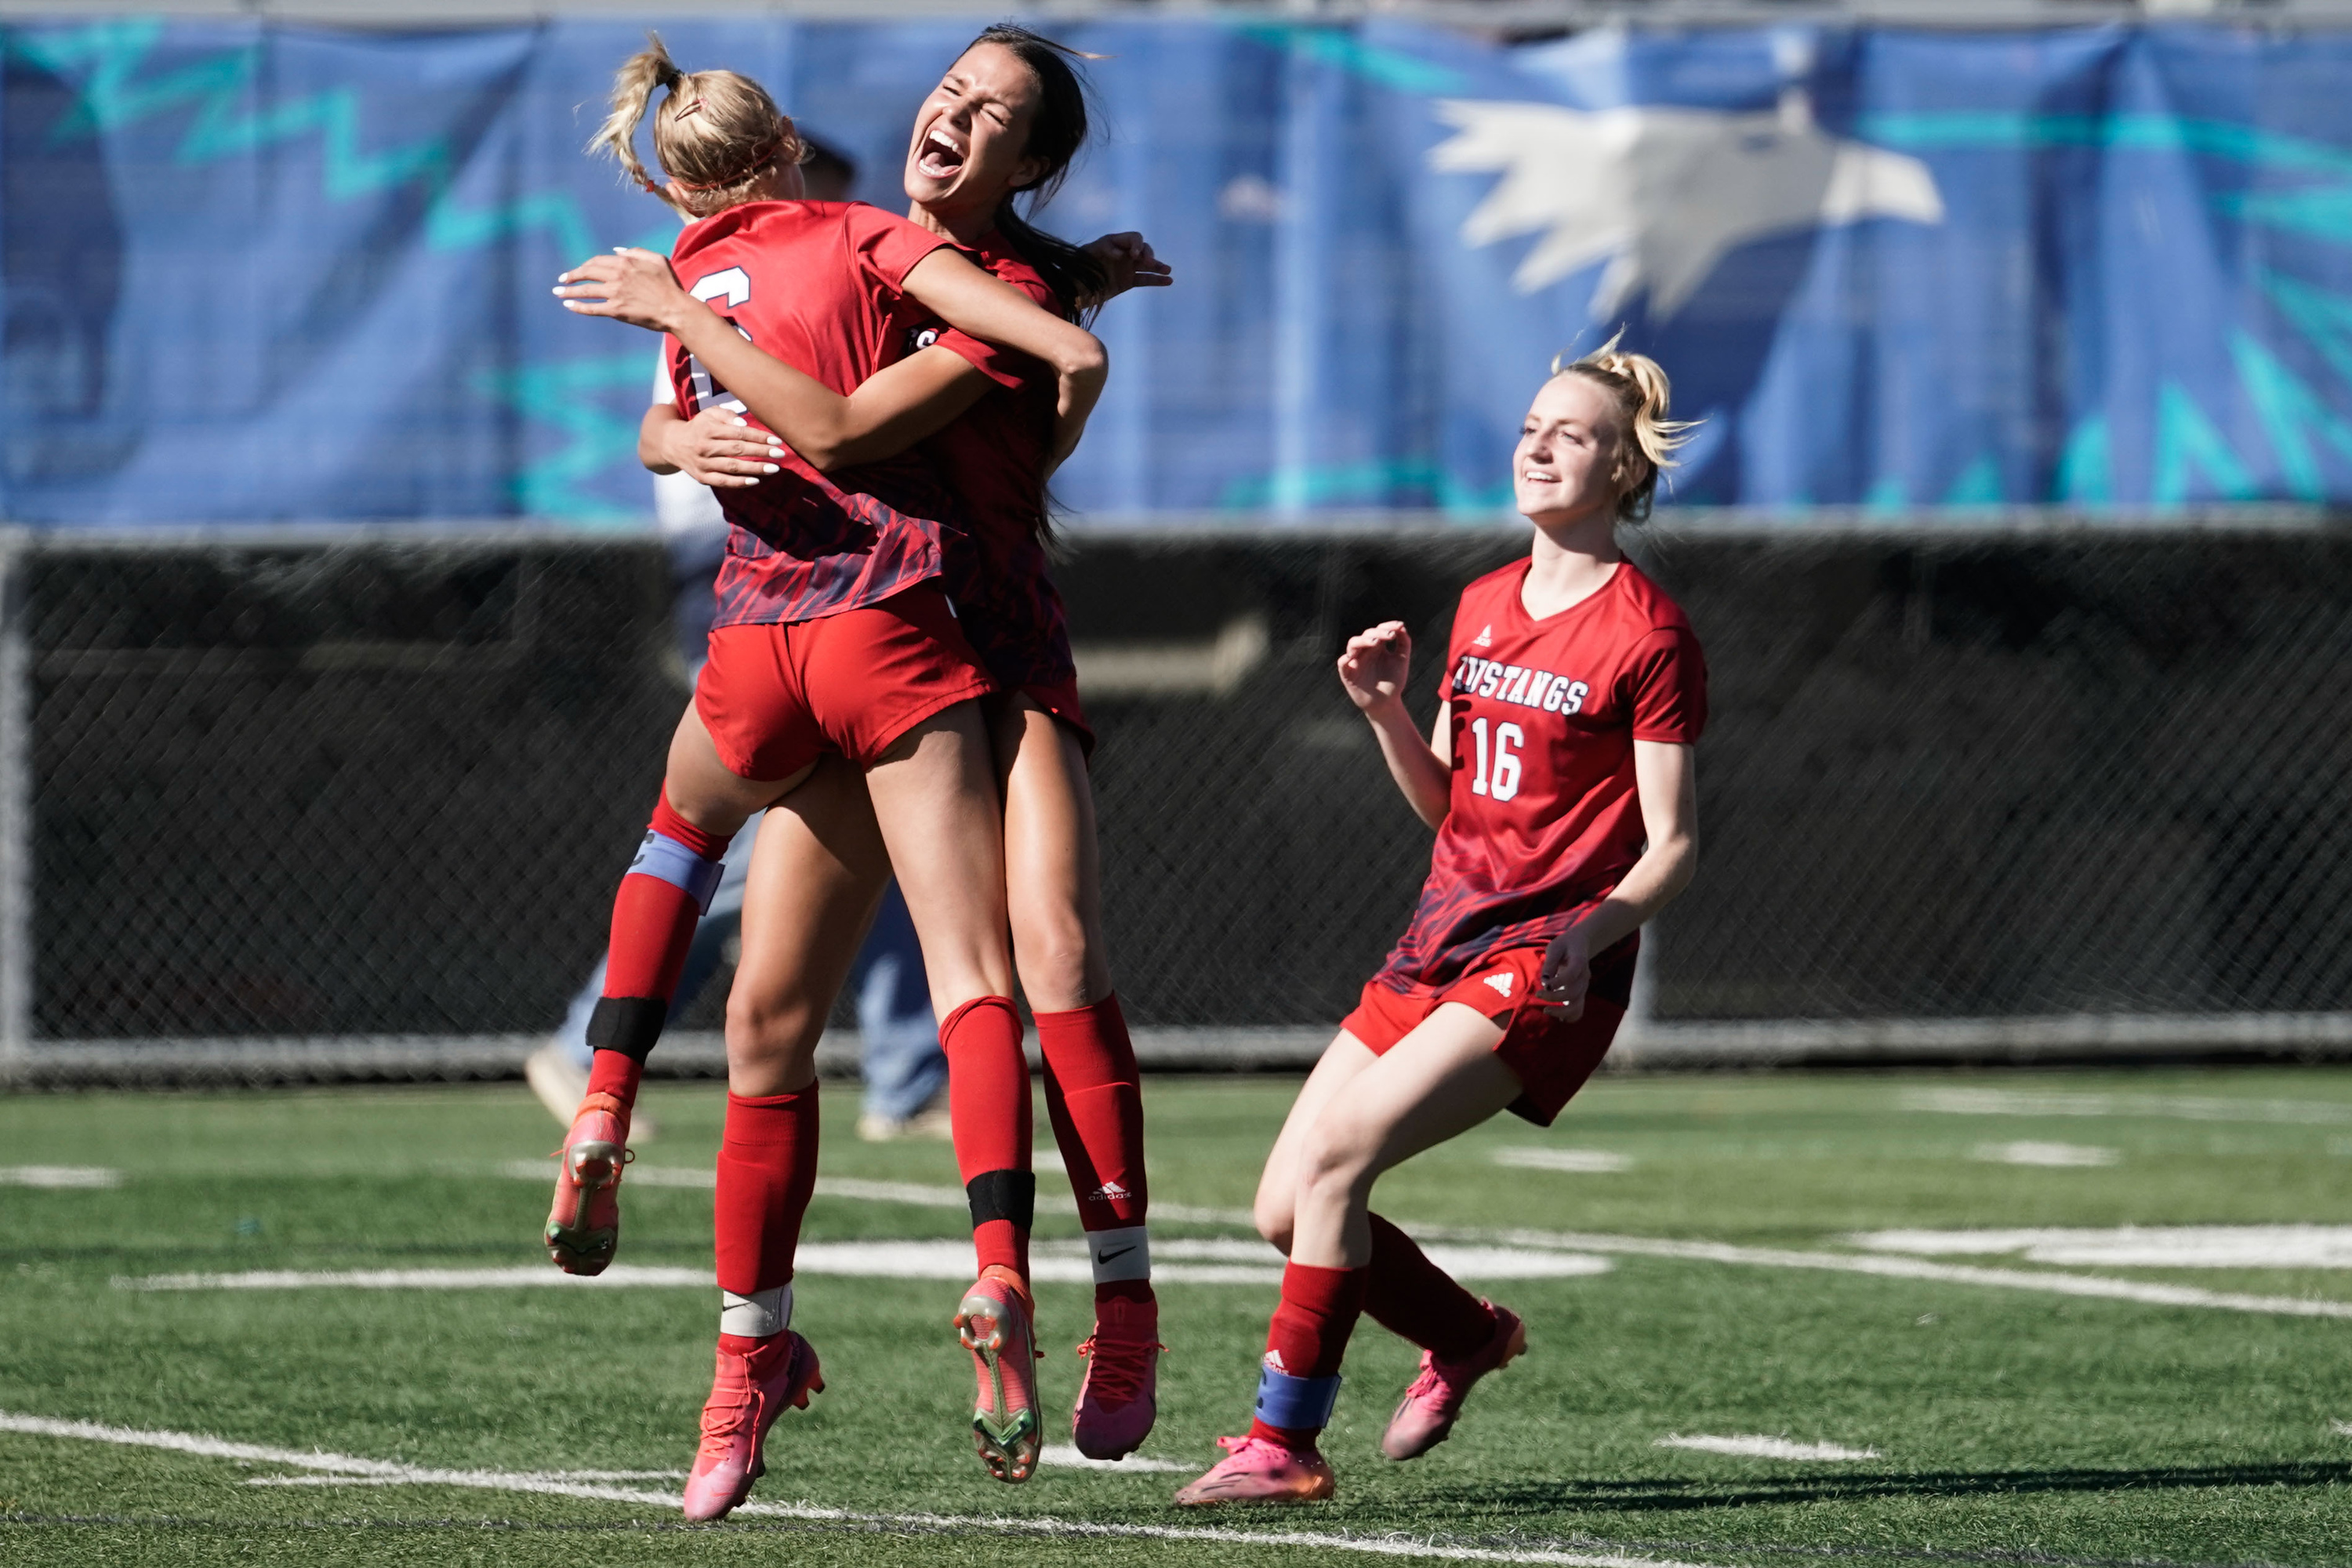 Crimson Cliffs players celebrate their victory against Sky View High in the 4A girls soccer state semifinal game at Juan Diego Catholic High School in Draper.